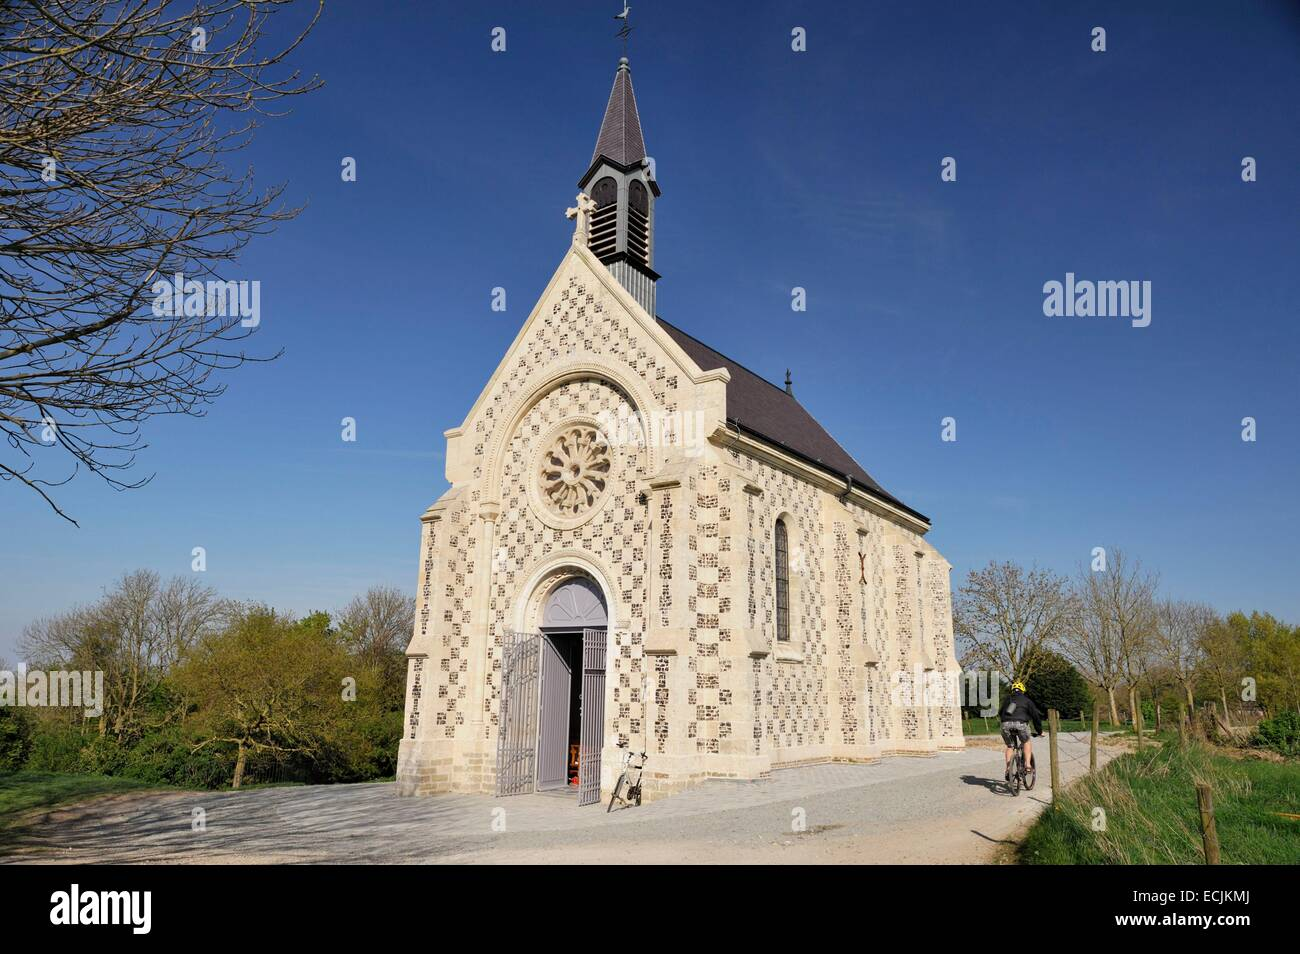 France, Somme, Saint Valery sur Somme, sailors' chapel restored in 2014 - Stock Image